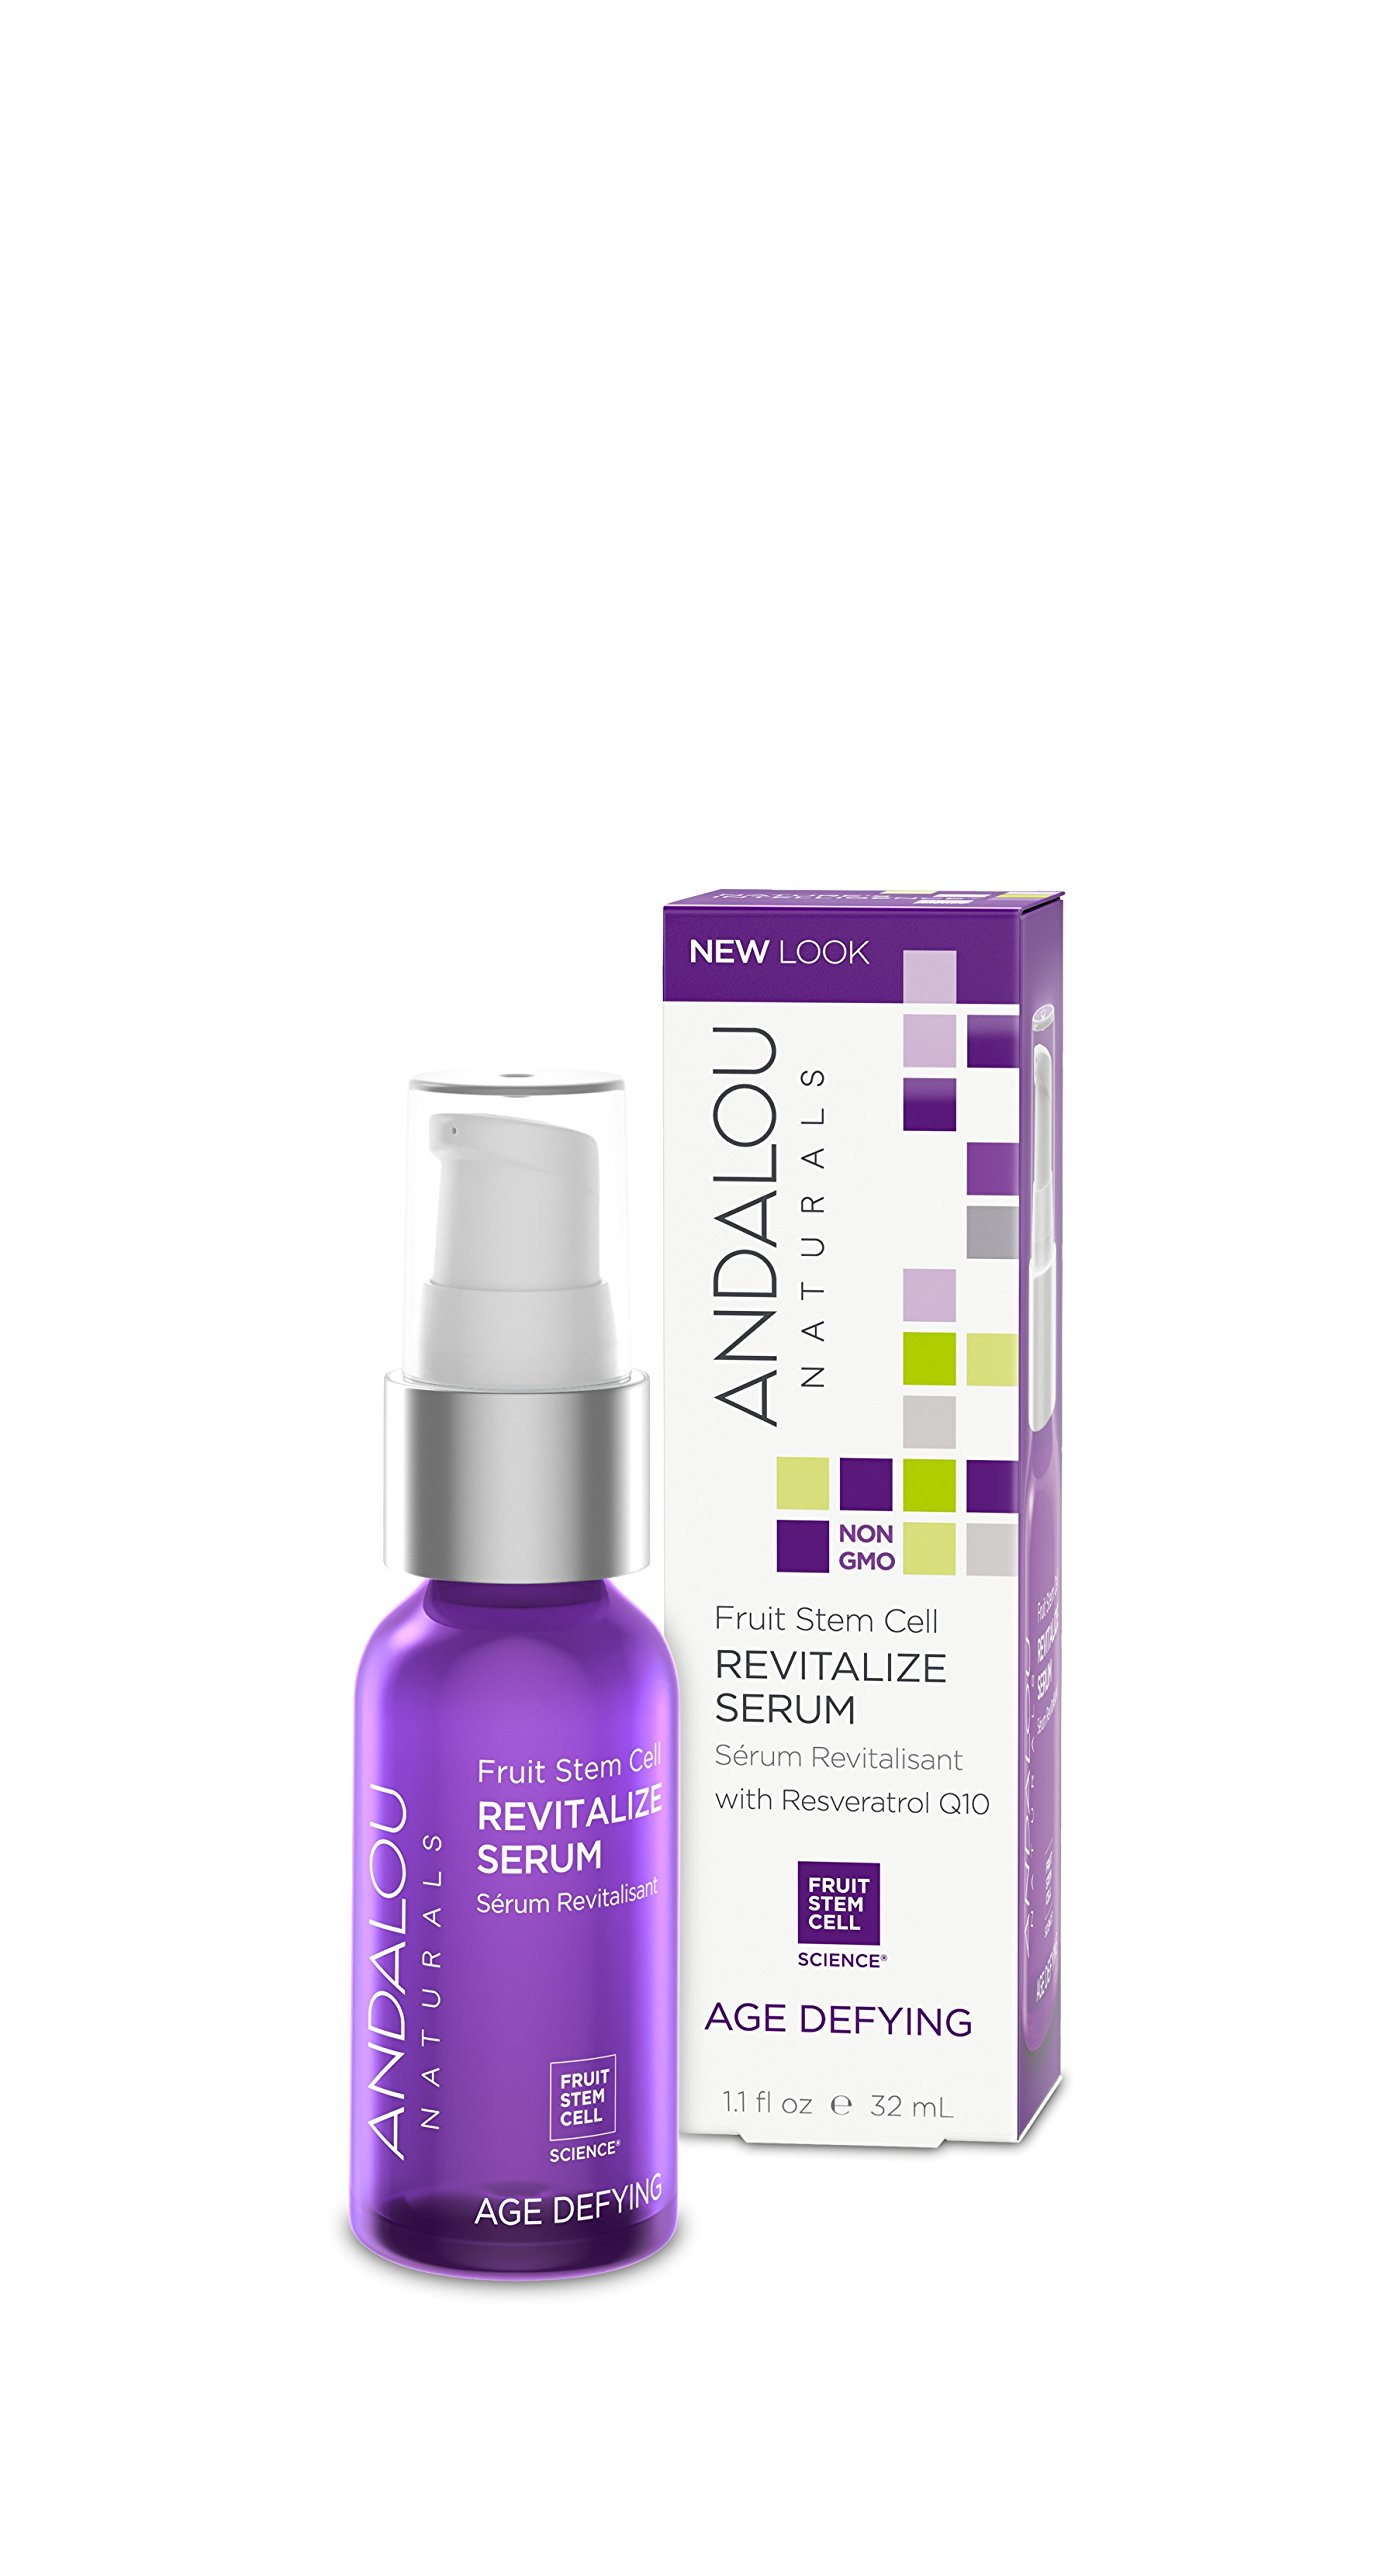 Andalou Naturals Fruit Stem Cell Revitalize Serum, 1.1 oz., For Dry Skin, Fine Lines & Wrinkles, Helps Skin Look Younger, Softer, Smoother